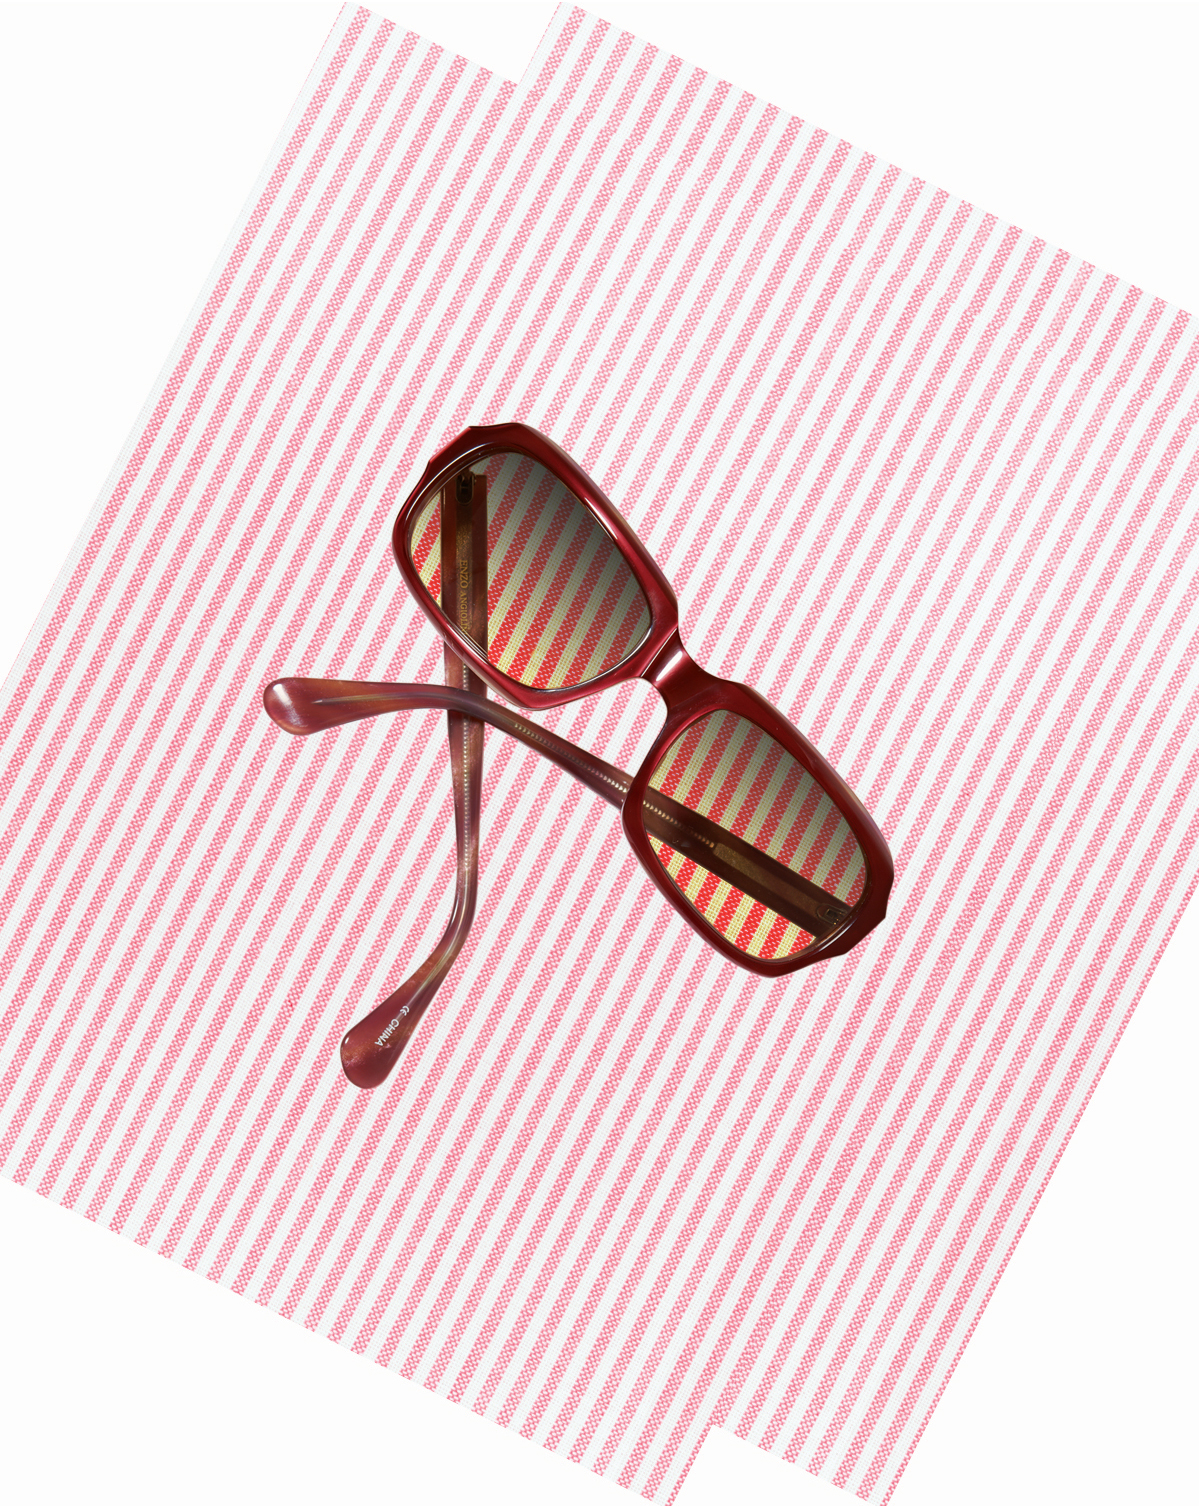 Sunglasses on pink striped background